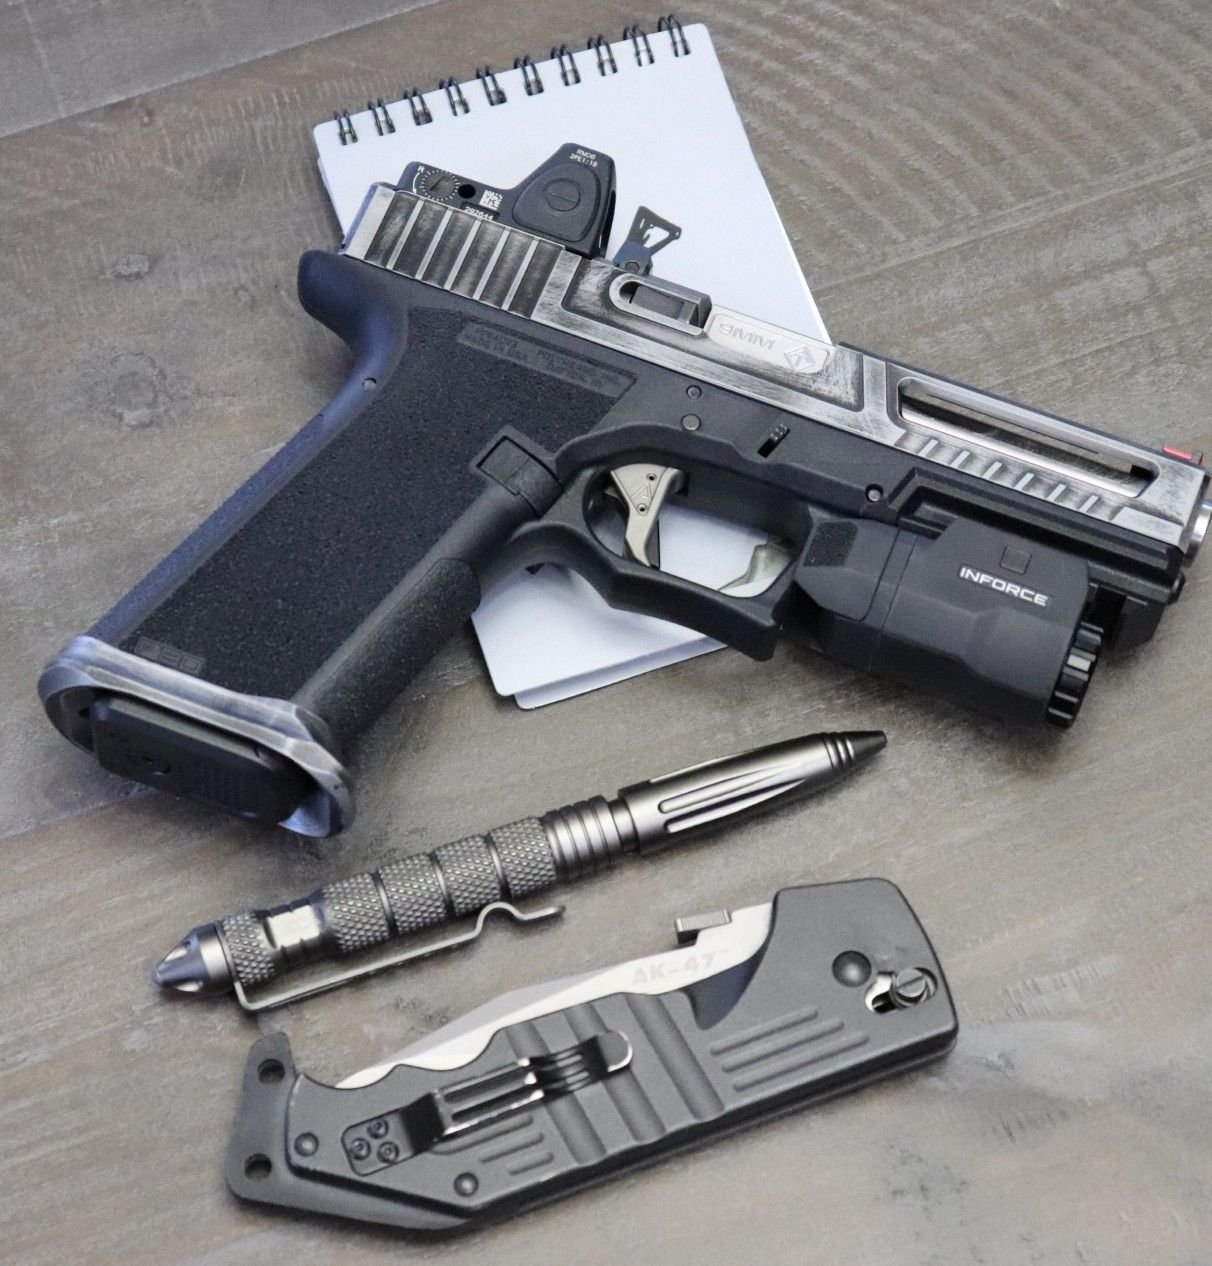 The Polymer 80 And The Oh So Affordable Steel City Arsenal Slide And Magwell The Best Ultralight Slide In Its Price Firearms Concealed Carry Handgun Hand Guns